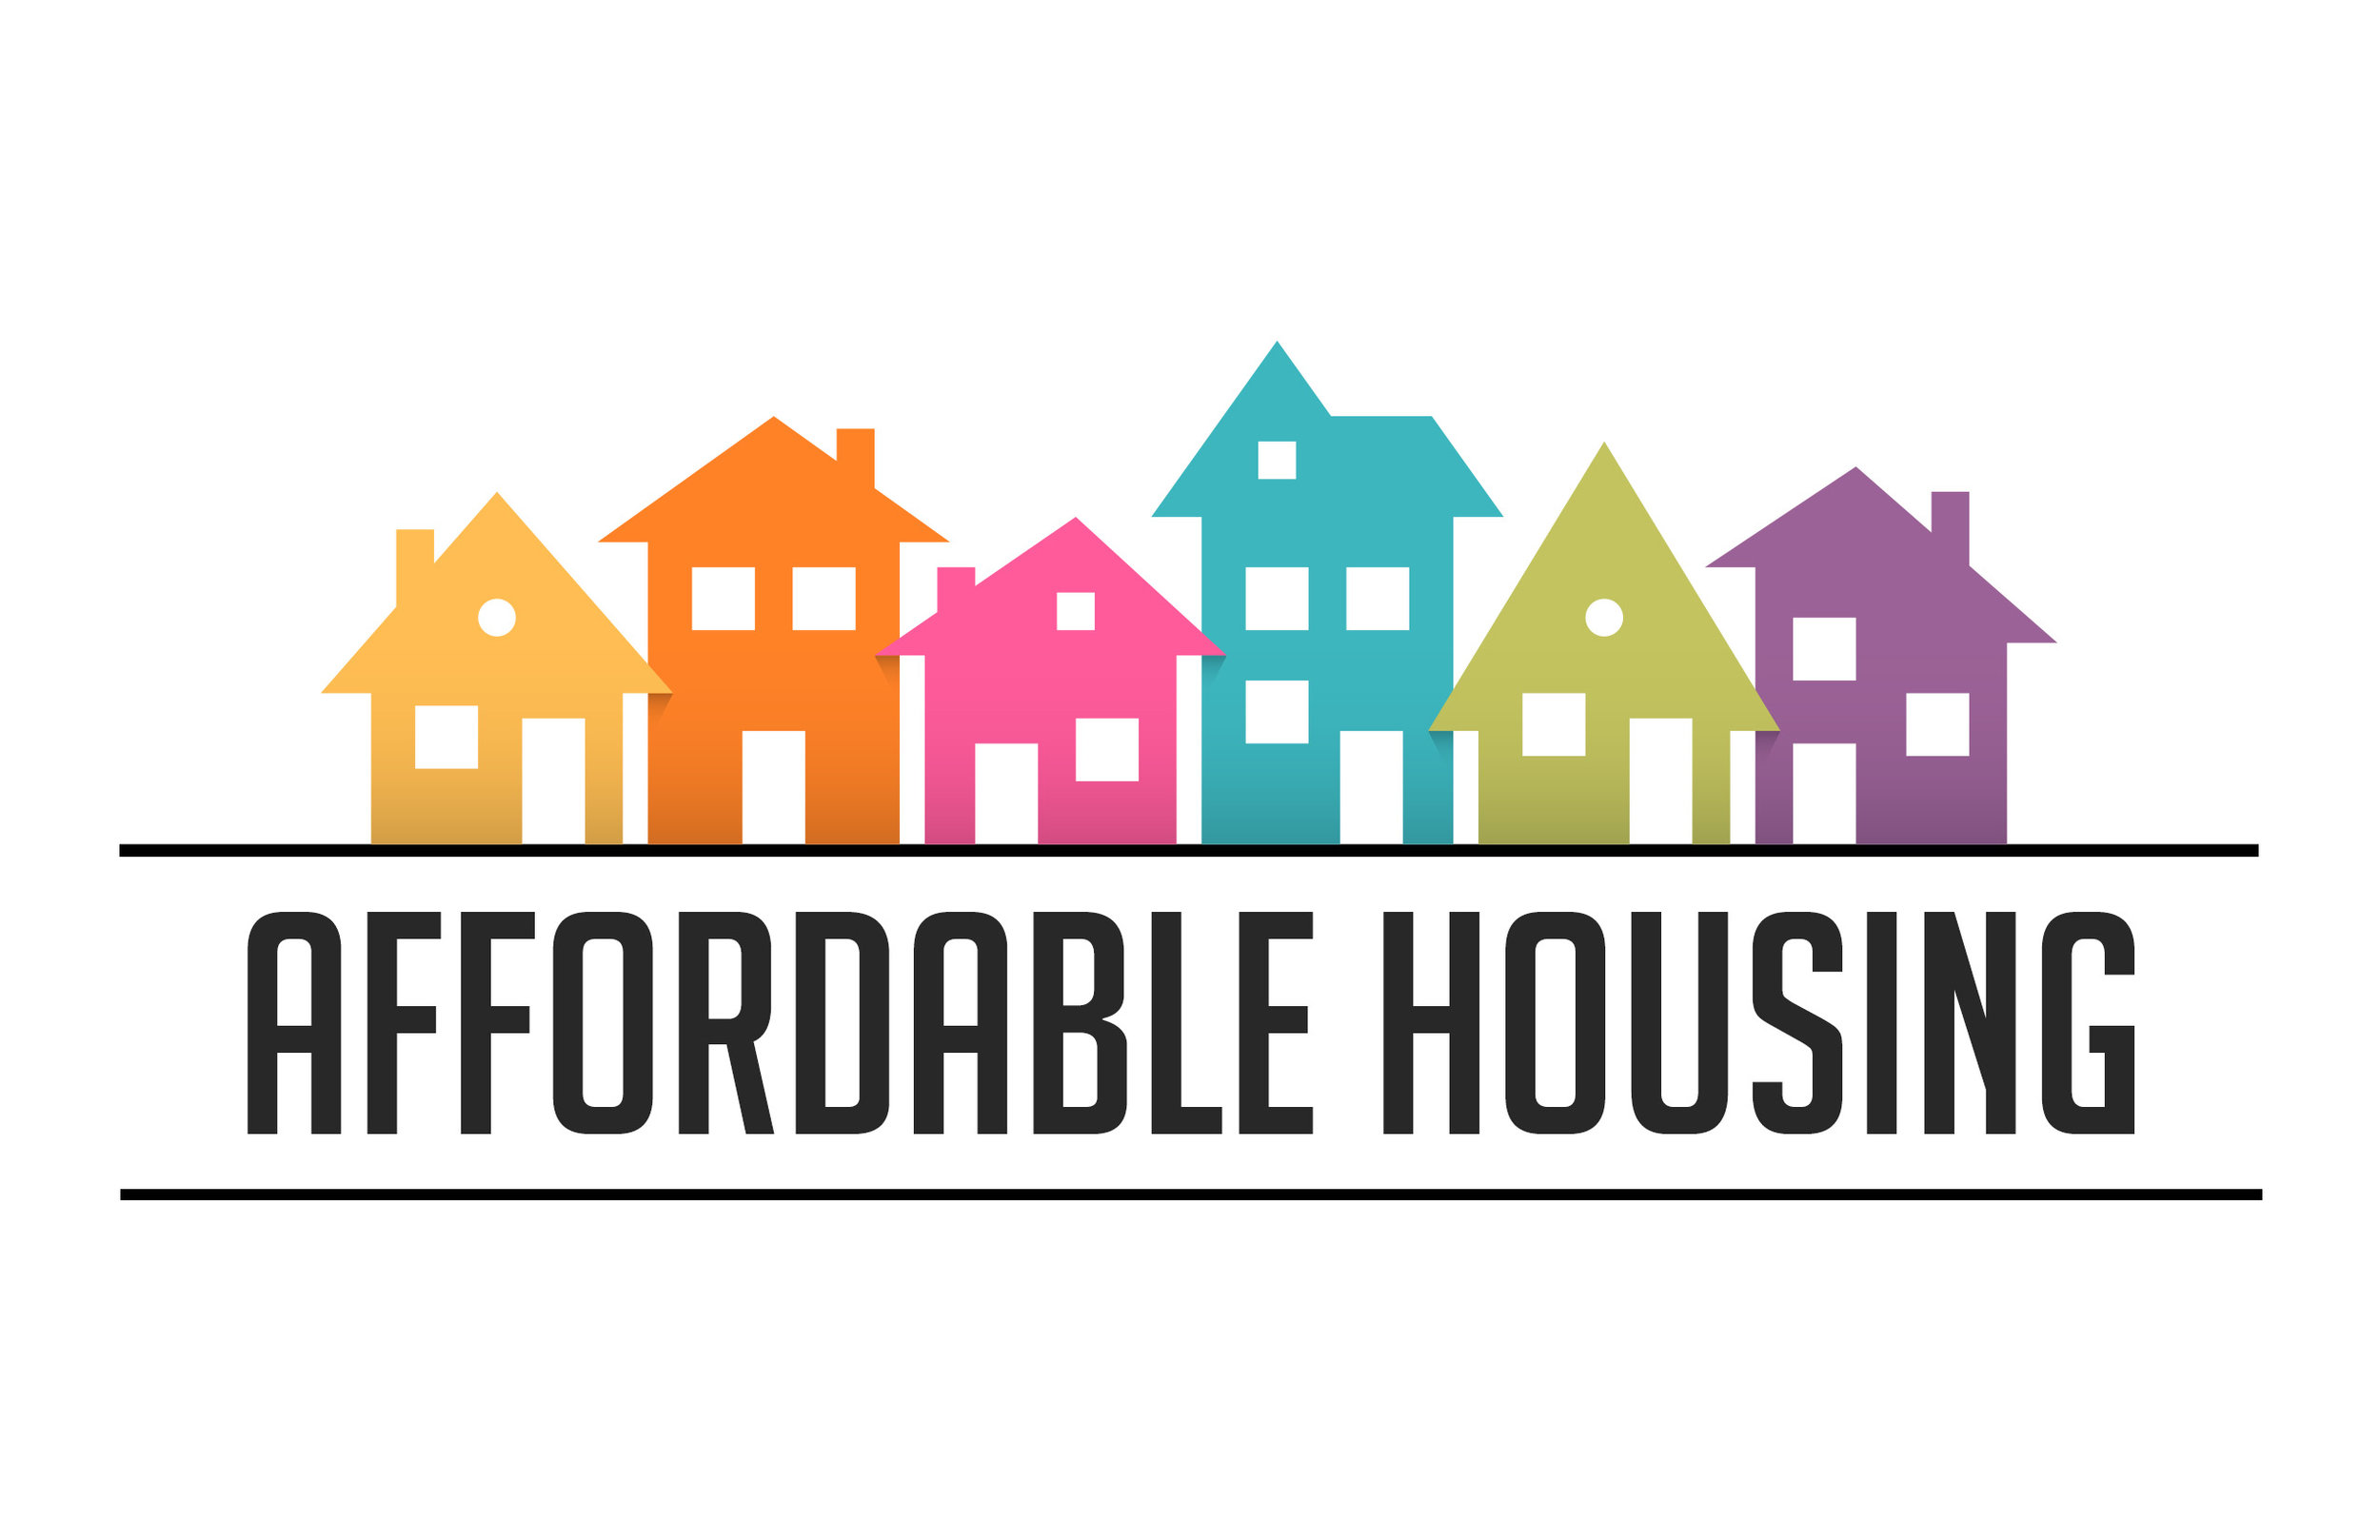 AffordableHousing_v1.jpg